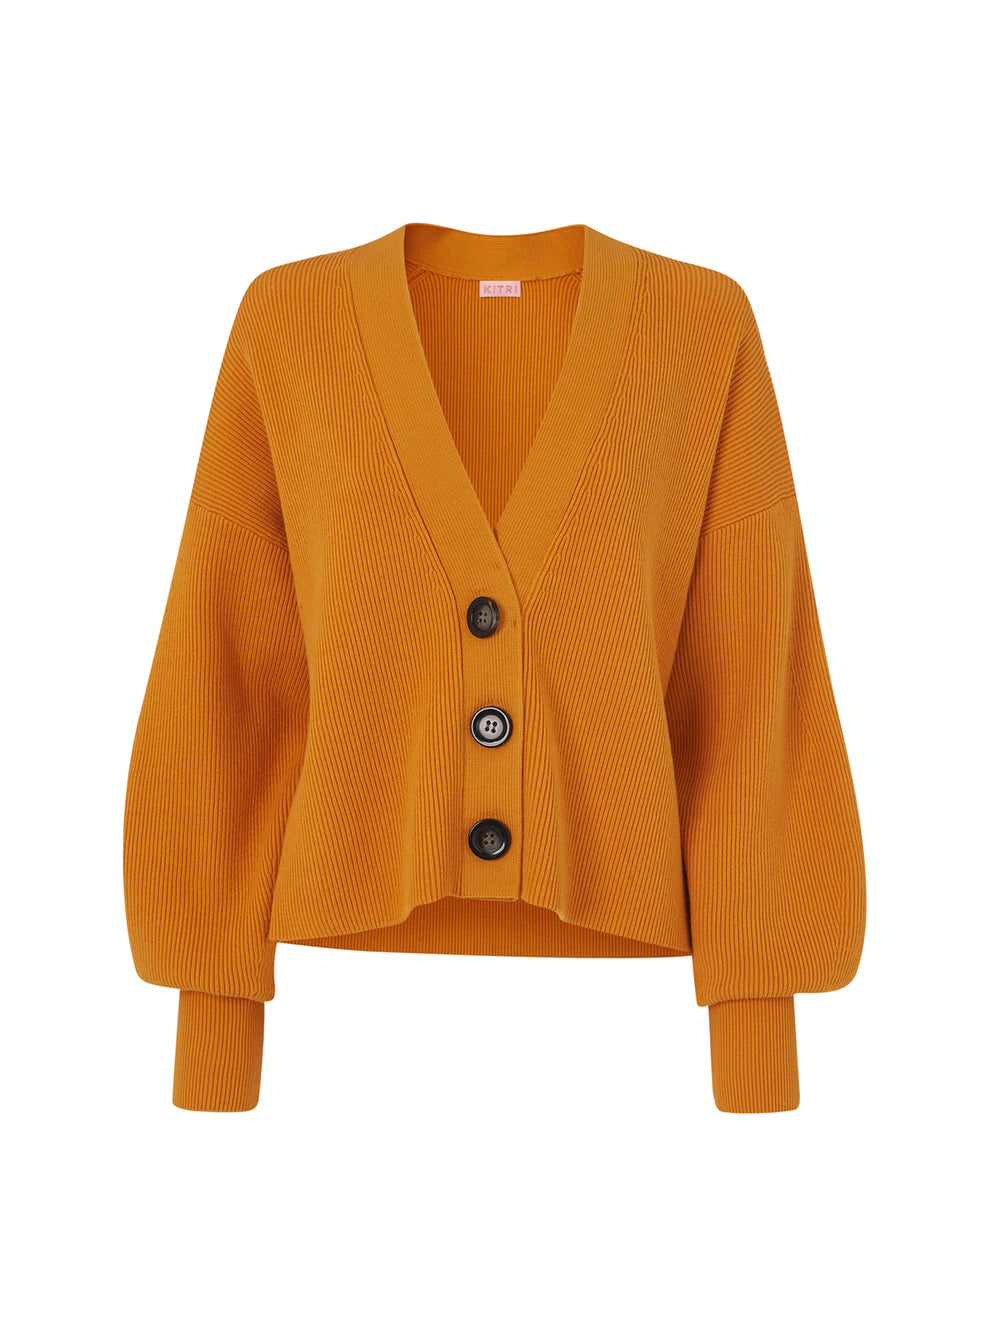 Jolie Orange Ribbed Knit Cardigan by KITRI Studio